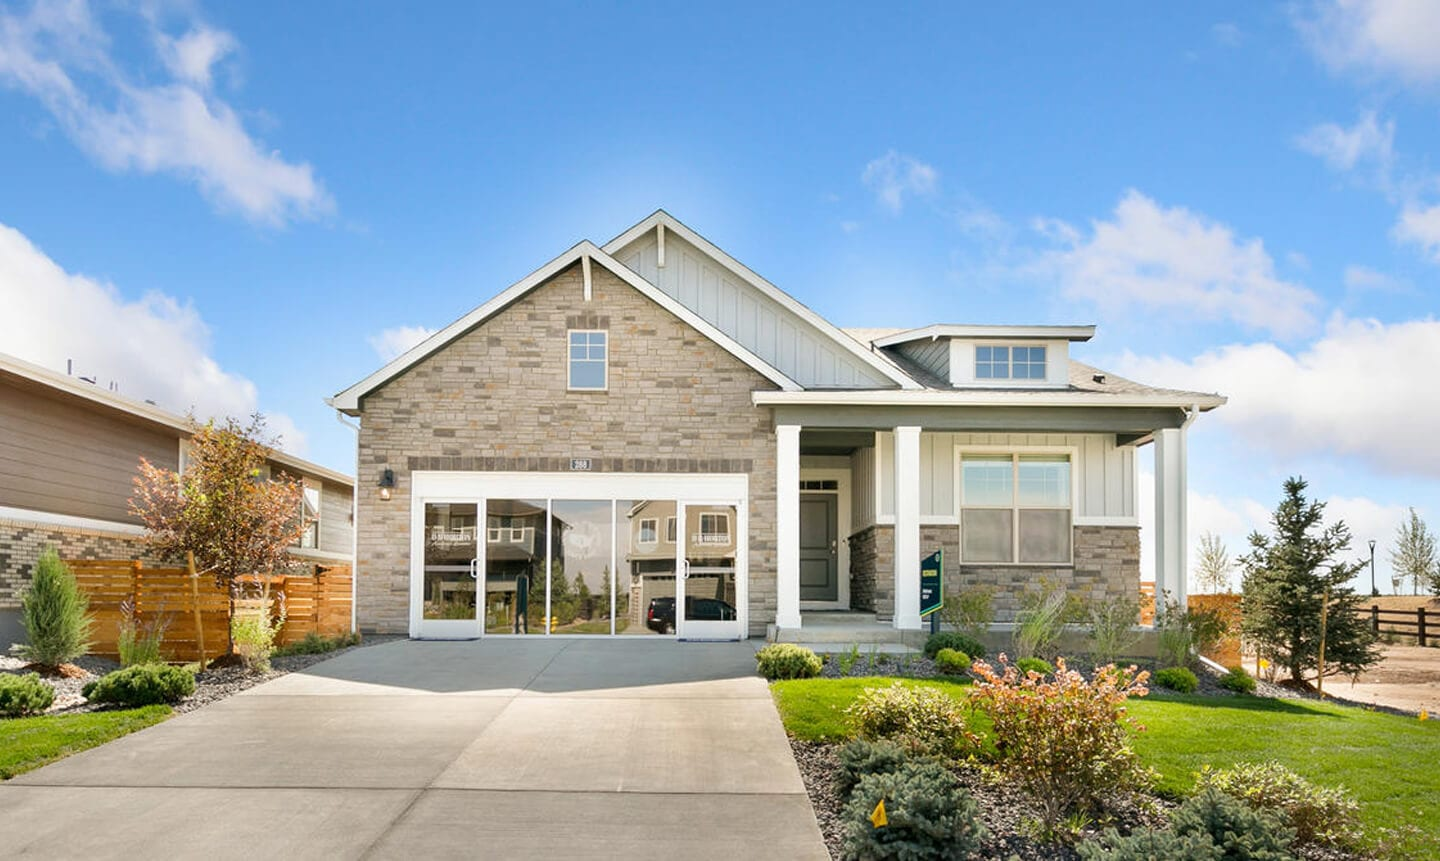 Modern DR Horton Showhome in Harmony.